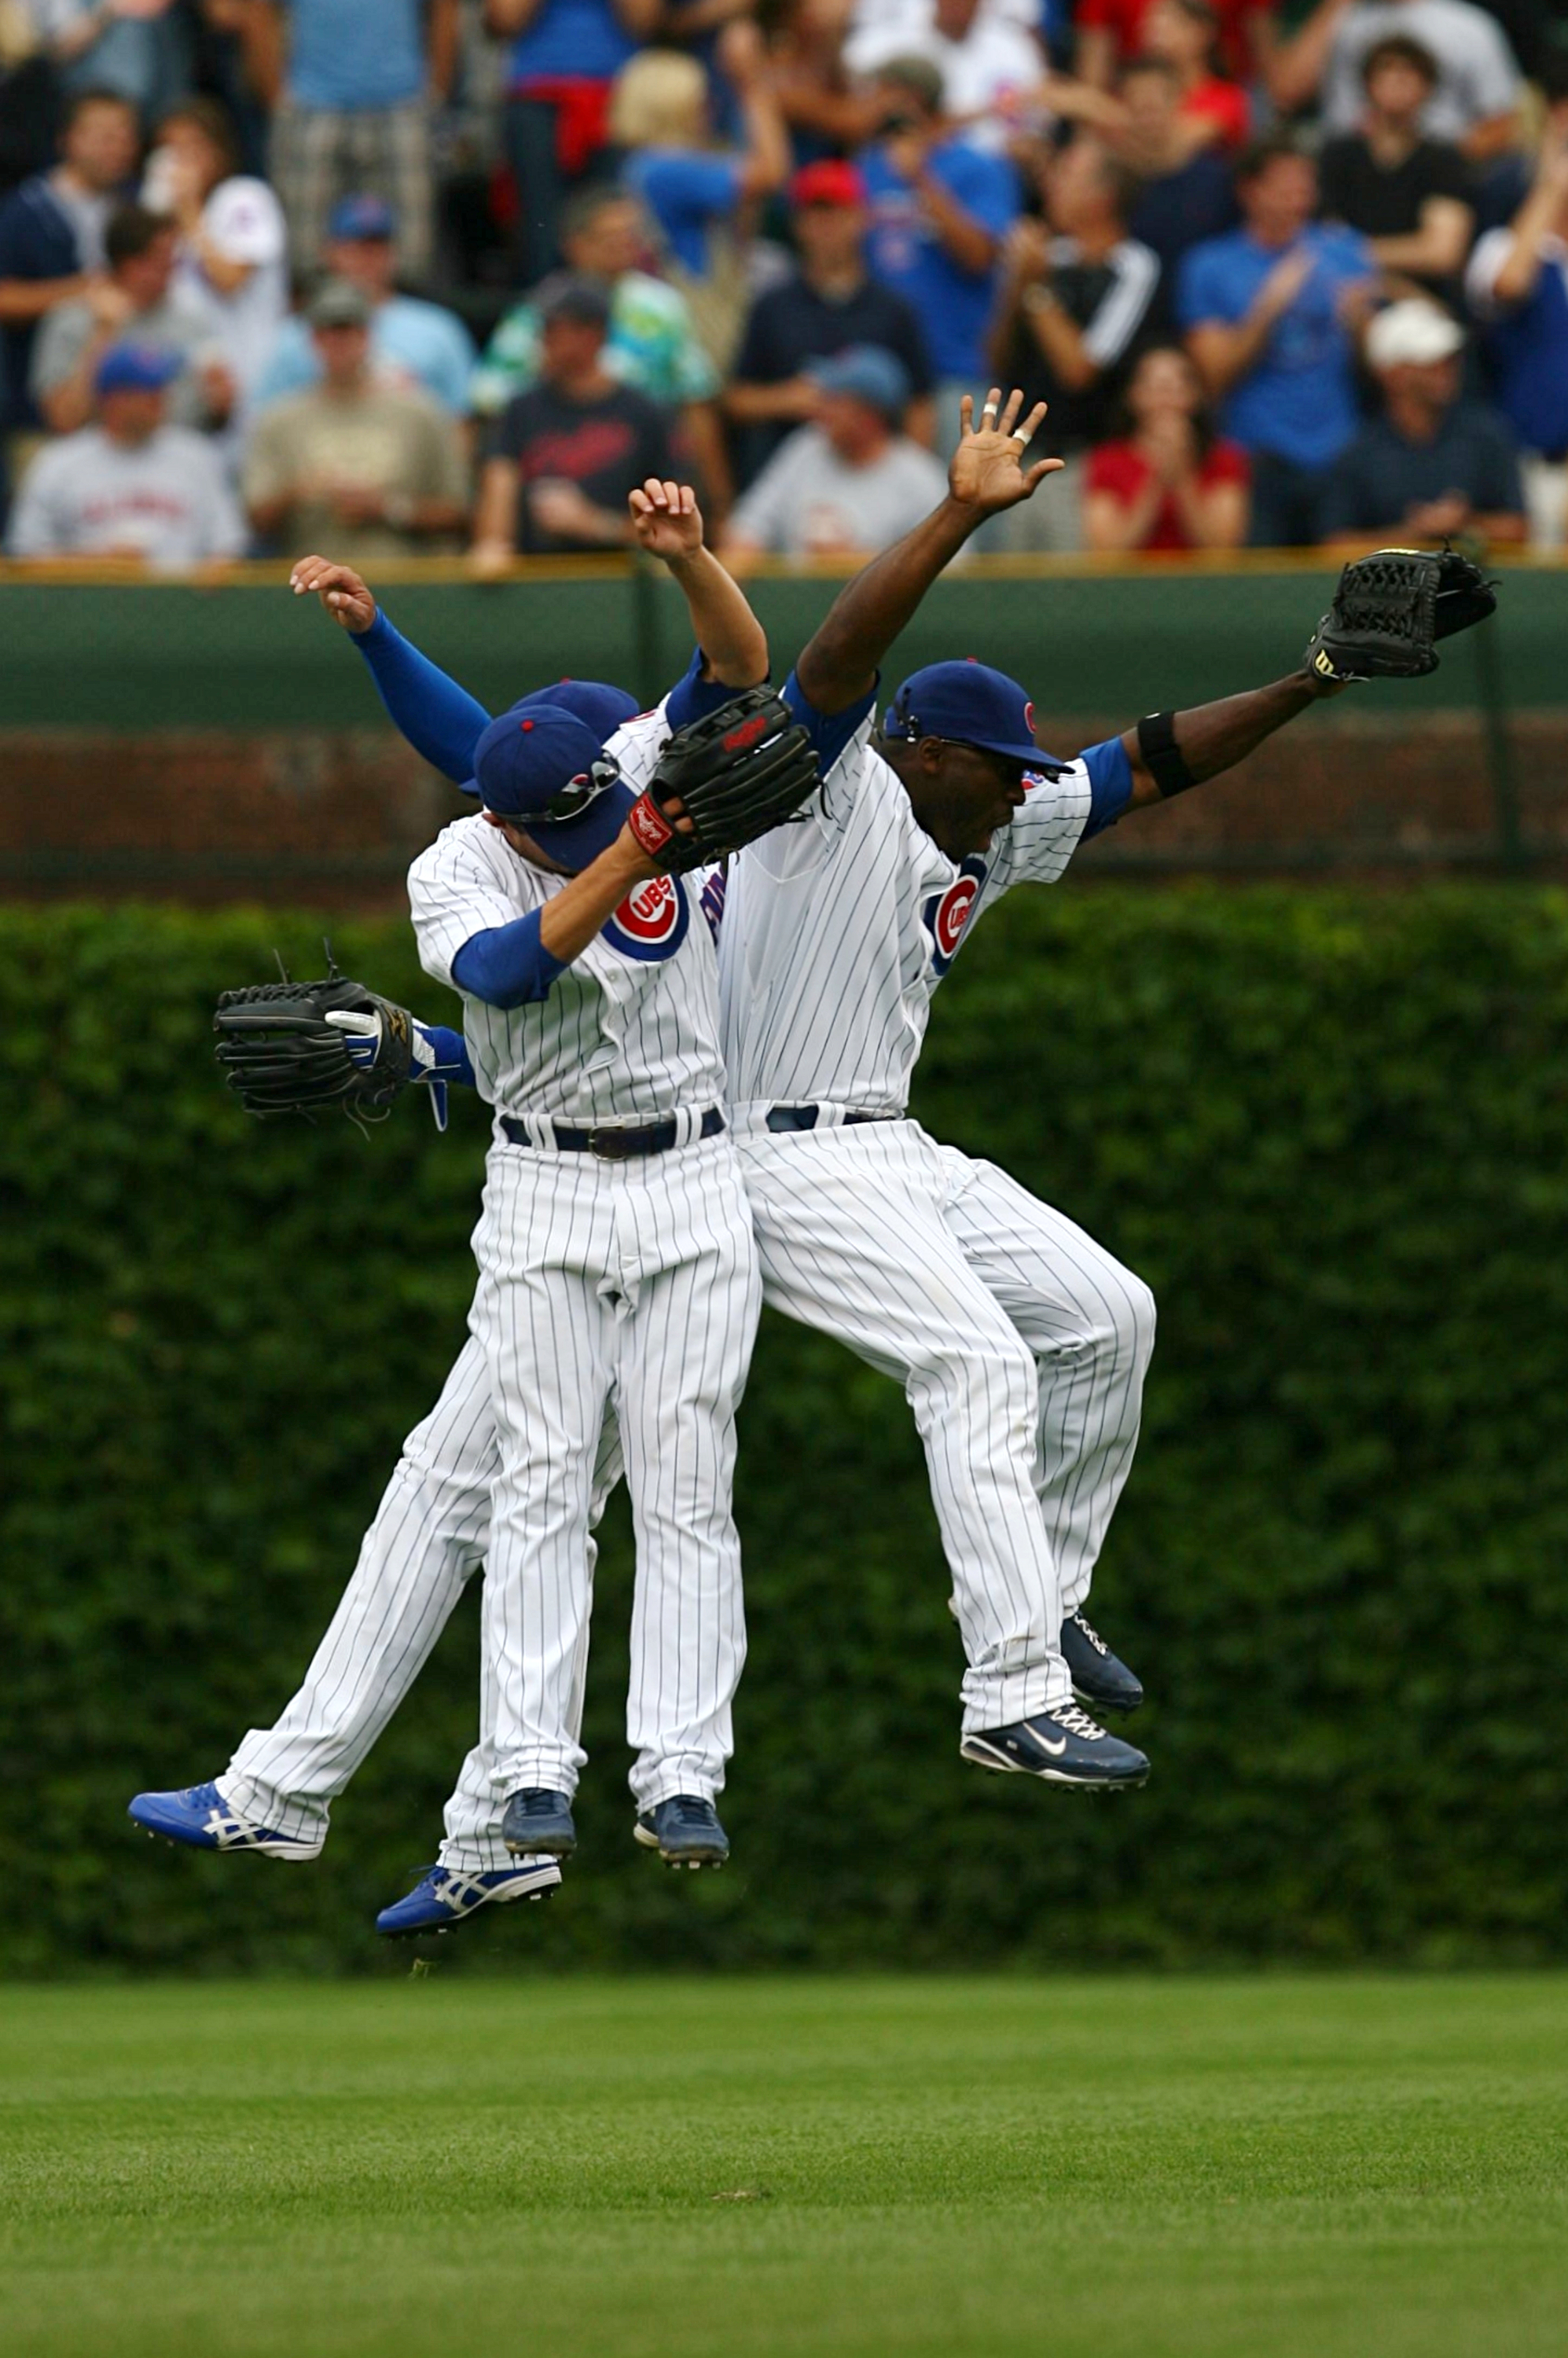 CHICAGO - AUGUST 28: (R-L) Chicago Cubs outfielders Milton Bradley #21, Sam Fuld #27 and Kosuke Fukudome #1 celebrate their 5-2 win over the New York Mets at Wrigley Field on August 28, 2009 in Chicago, Illinois. (Photo by Jonathan Daniel/Getty Images)